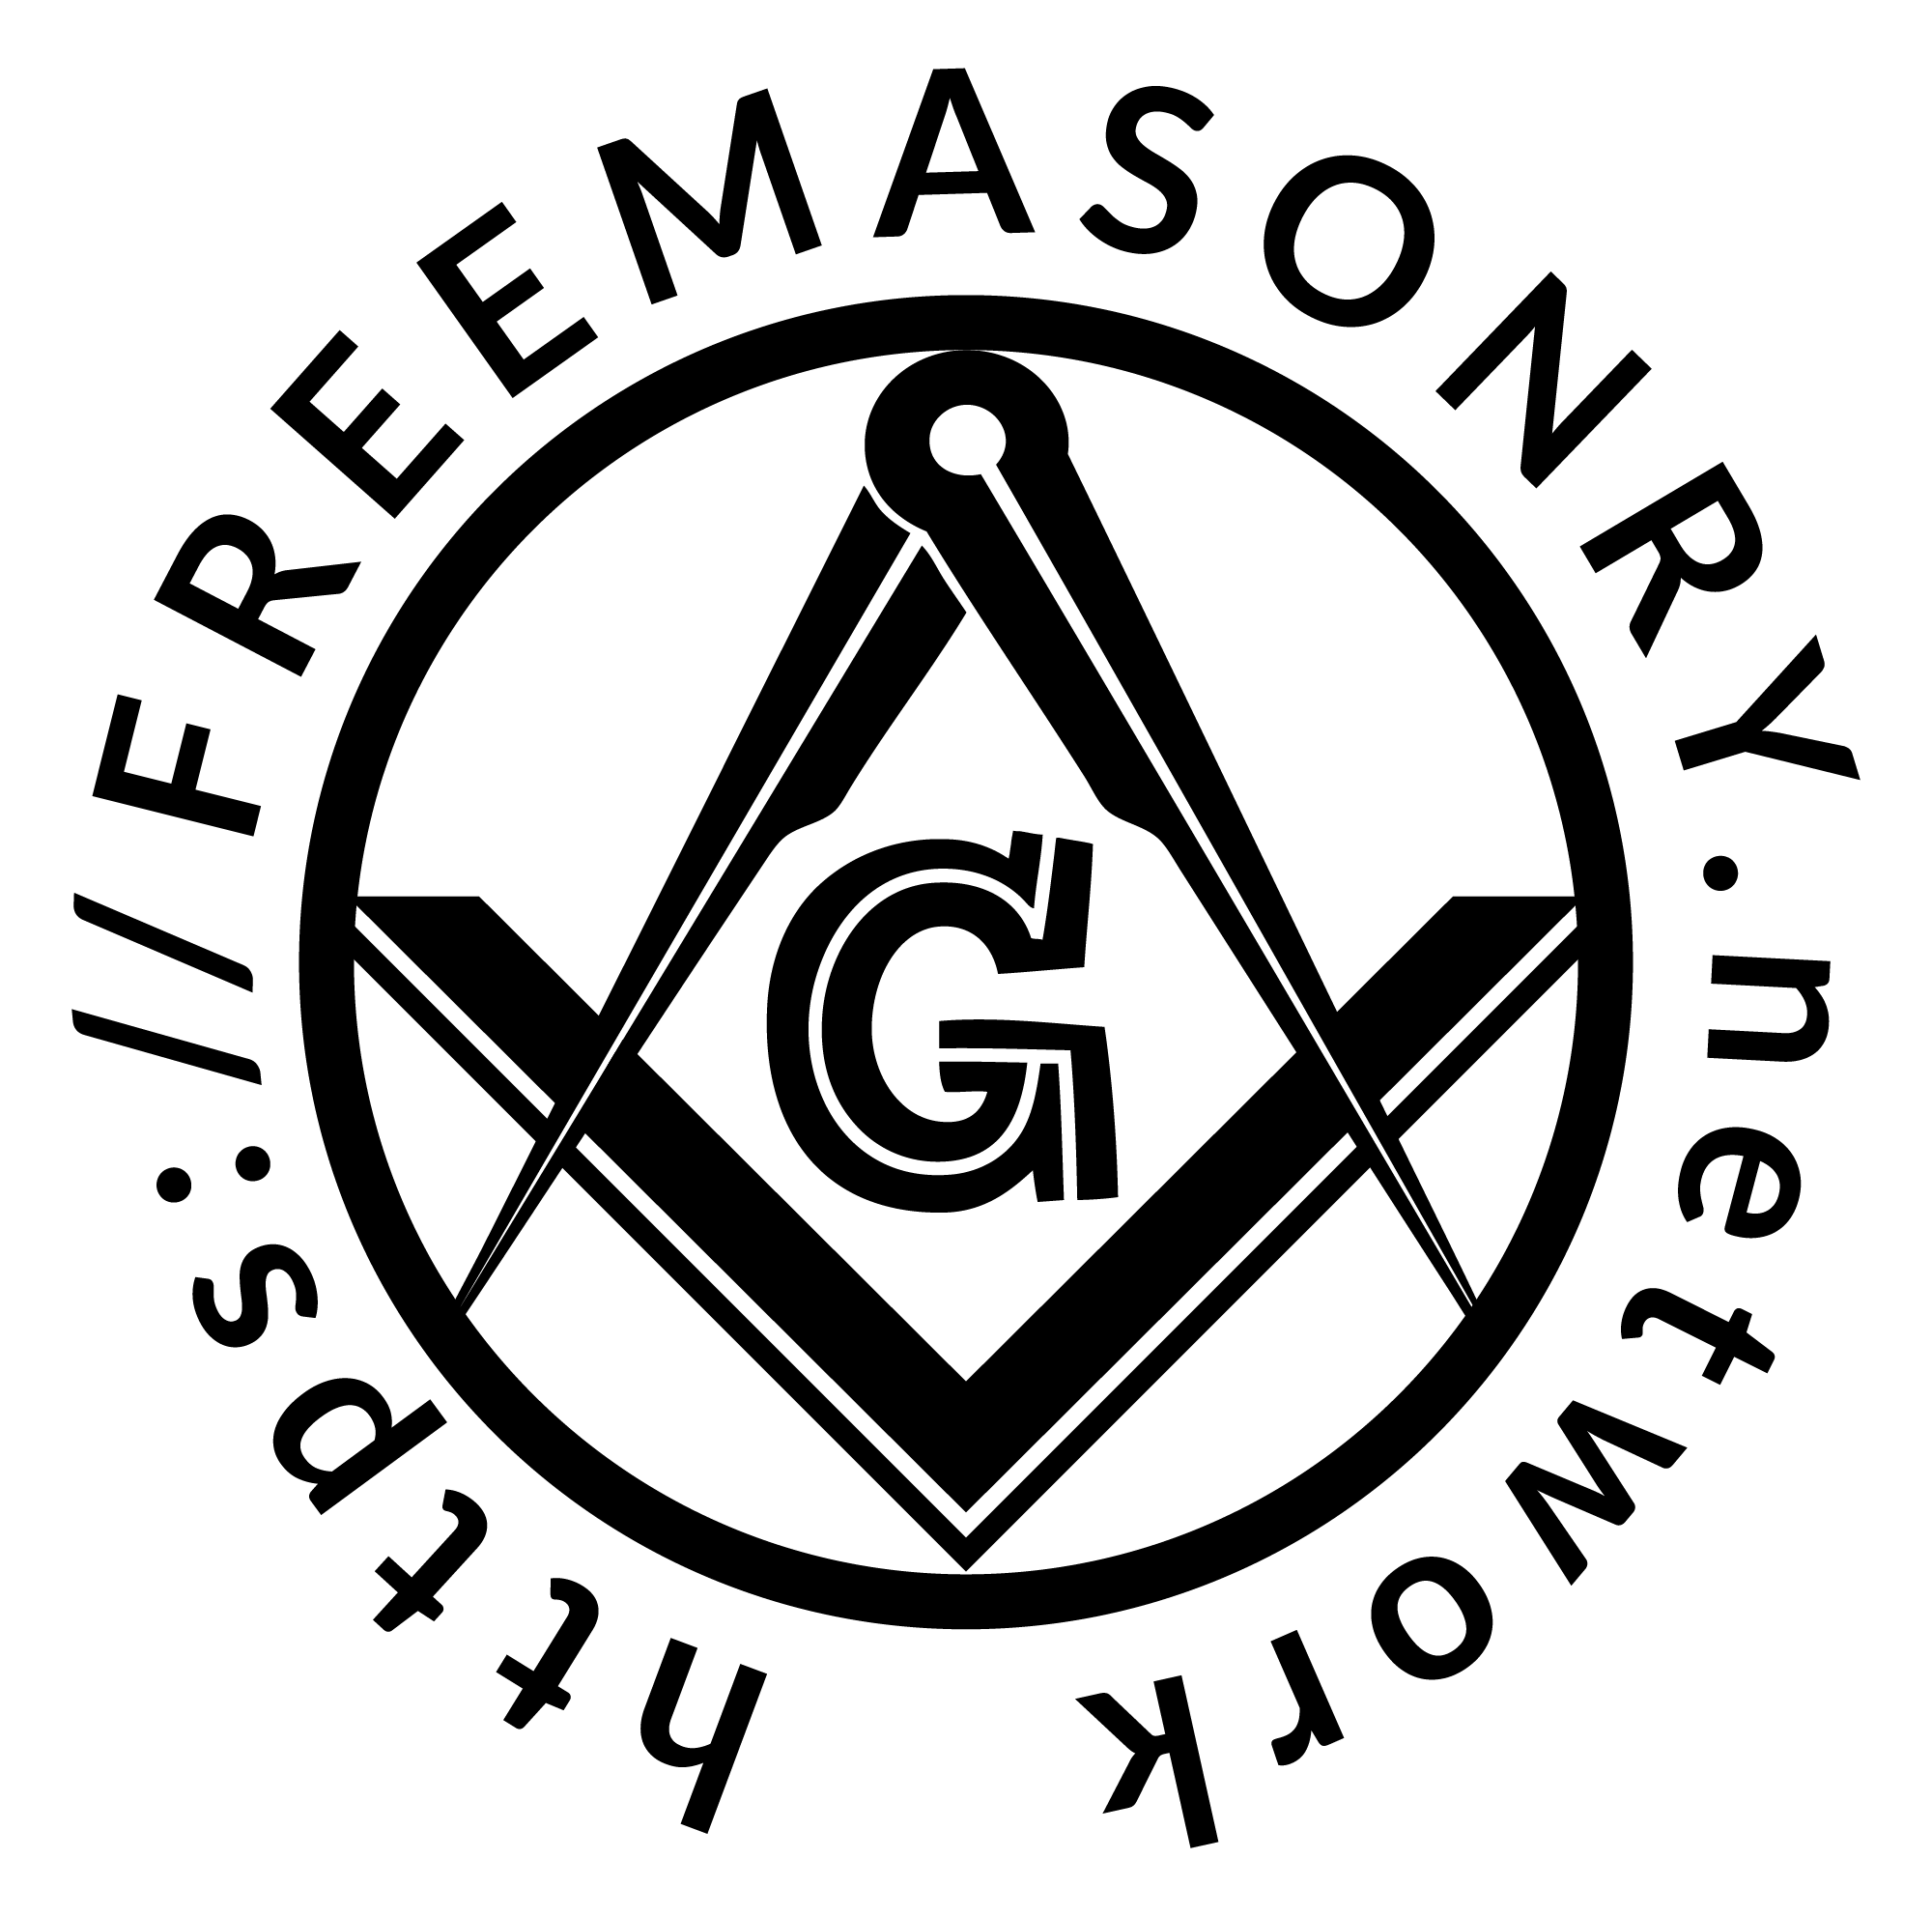 FREEMASONRY IN SENEGAL